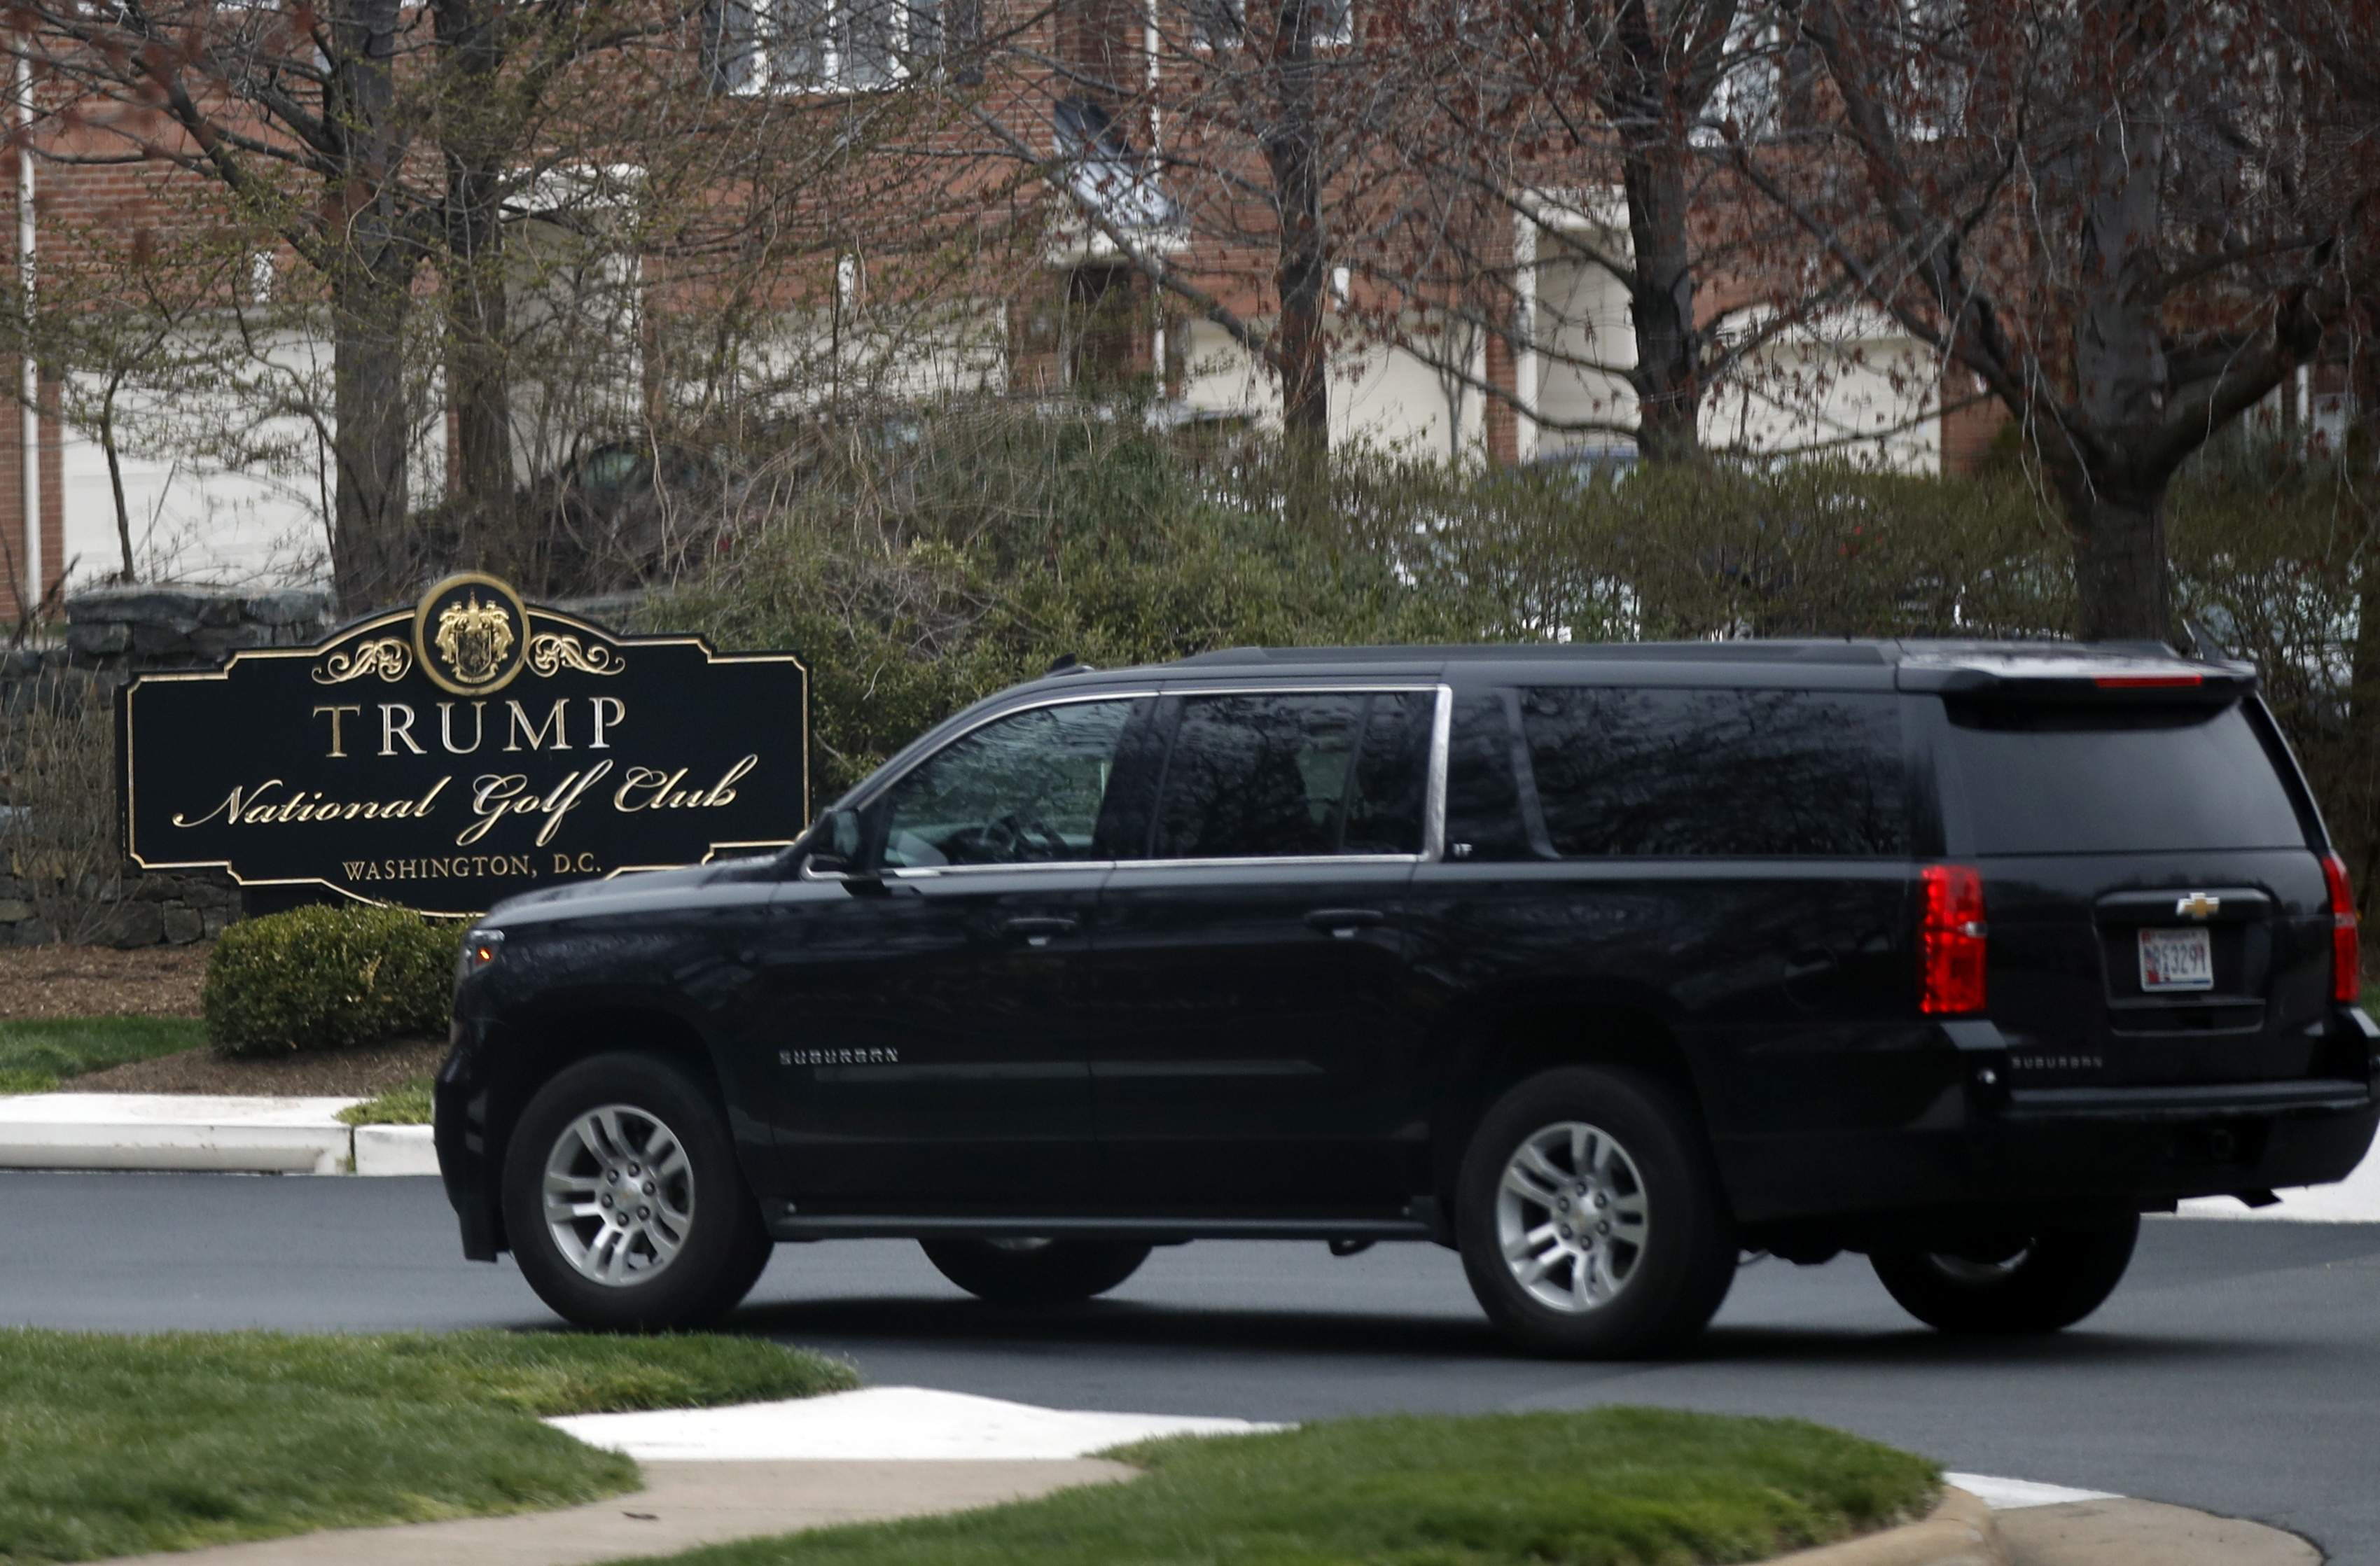 DAY 66 - In this March 26, 2017, file photo, a vehicle with President Donald Trump's motorcade enters the Trump National Golf Club in Potomac Falls, Va. The president traveled to his golf club in Virginia but there were no events open for press coverage and was not photographed. (AP Photo/Manuel Balce Ceneta, File)